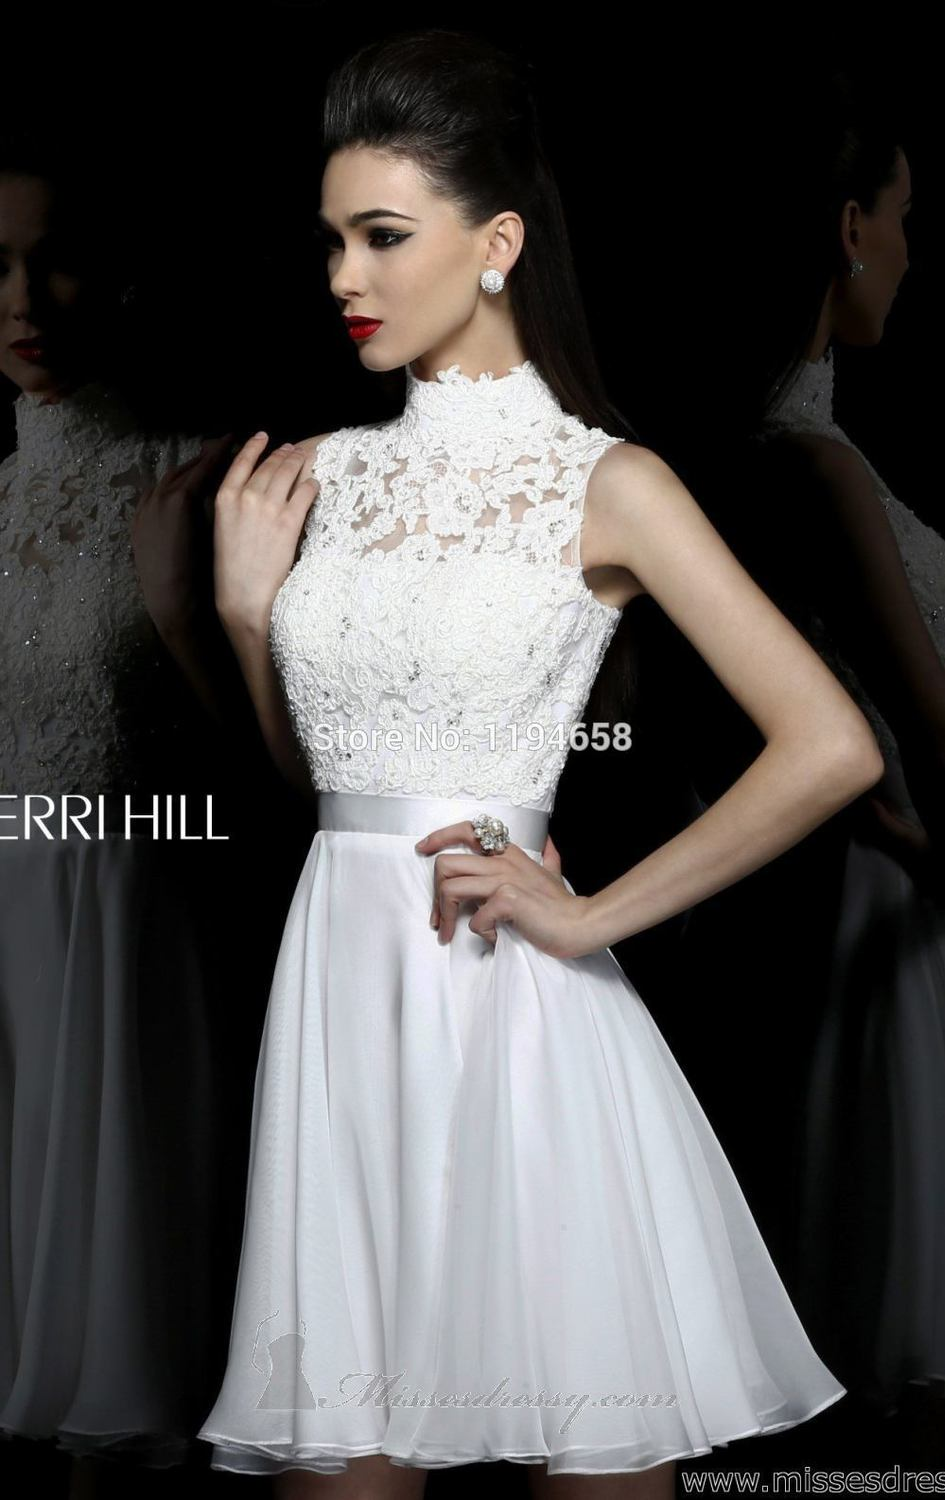 Large Of White Dresses For Graduation